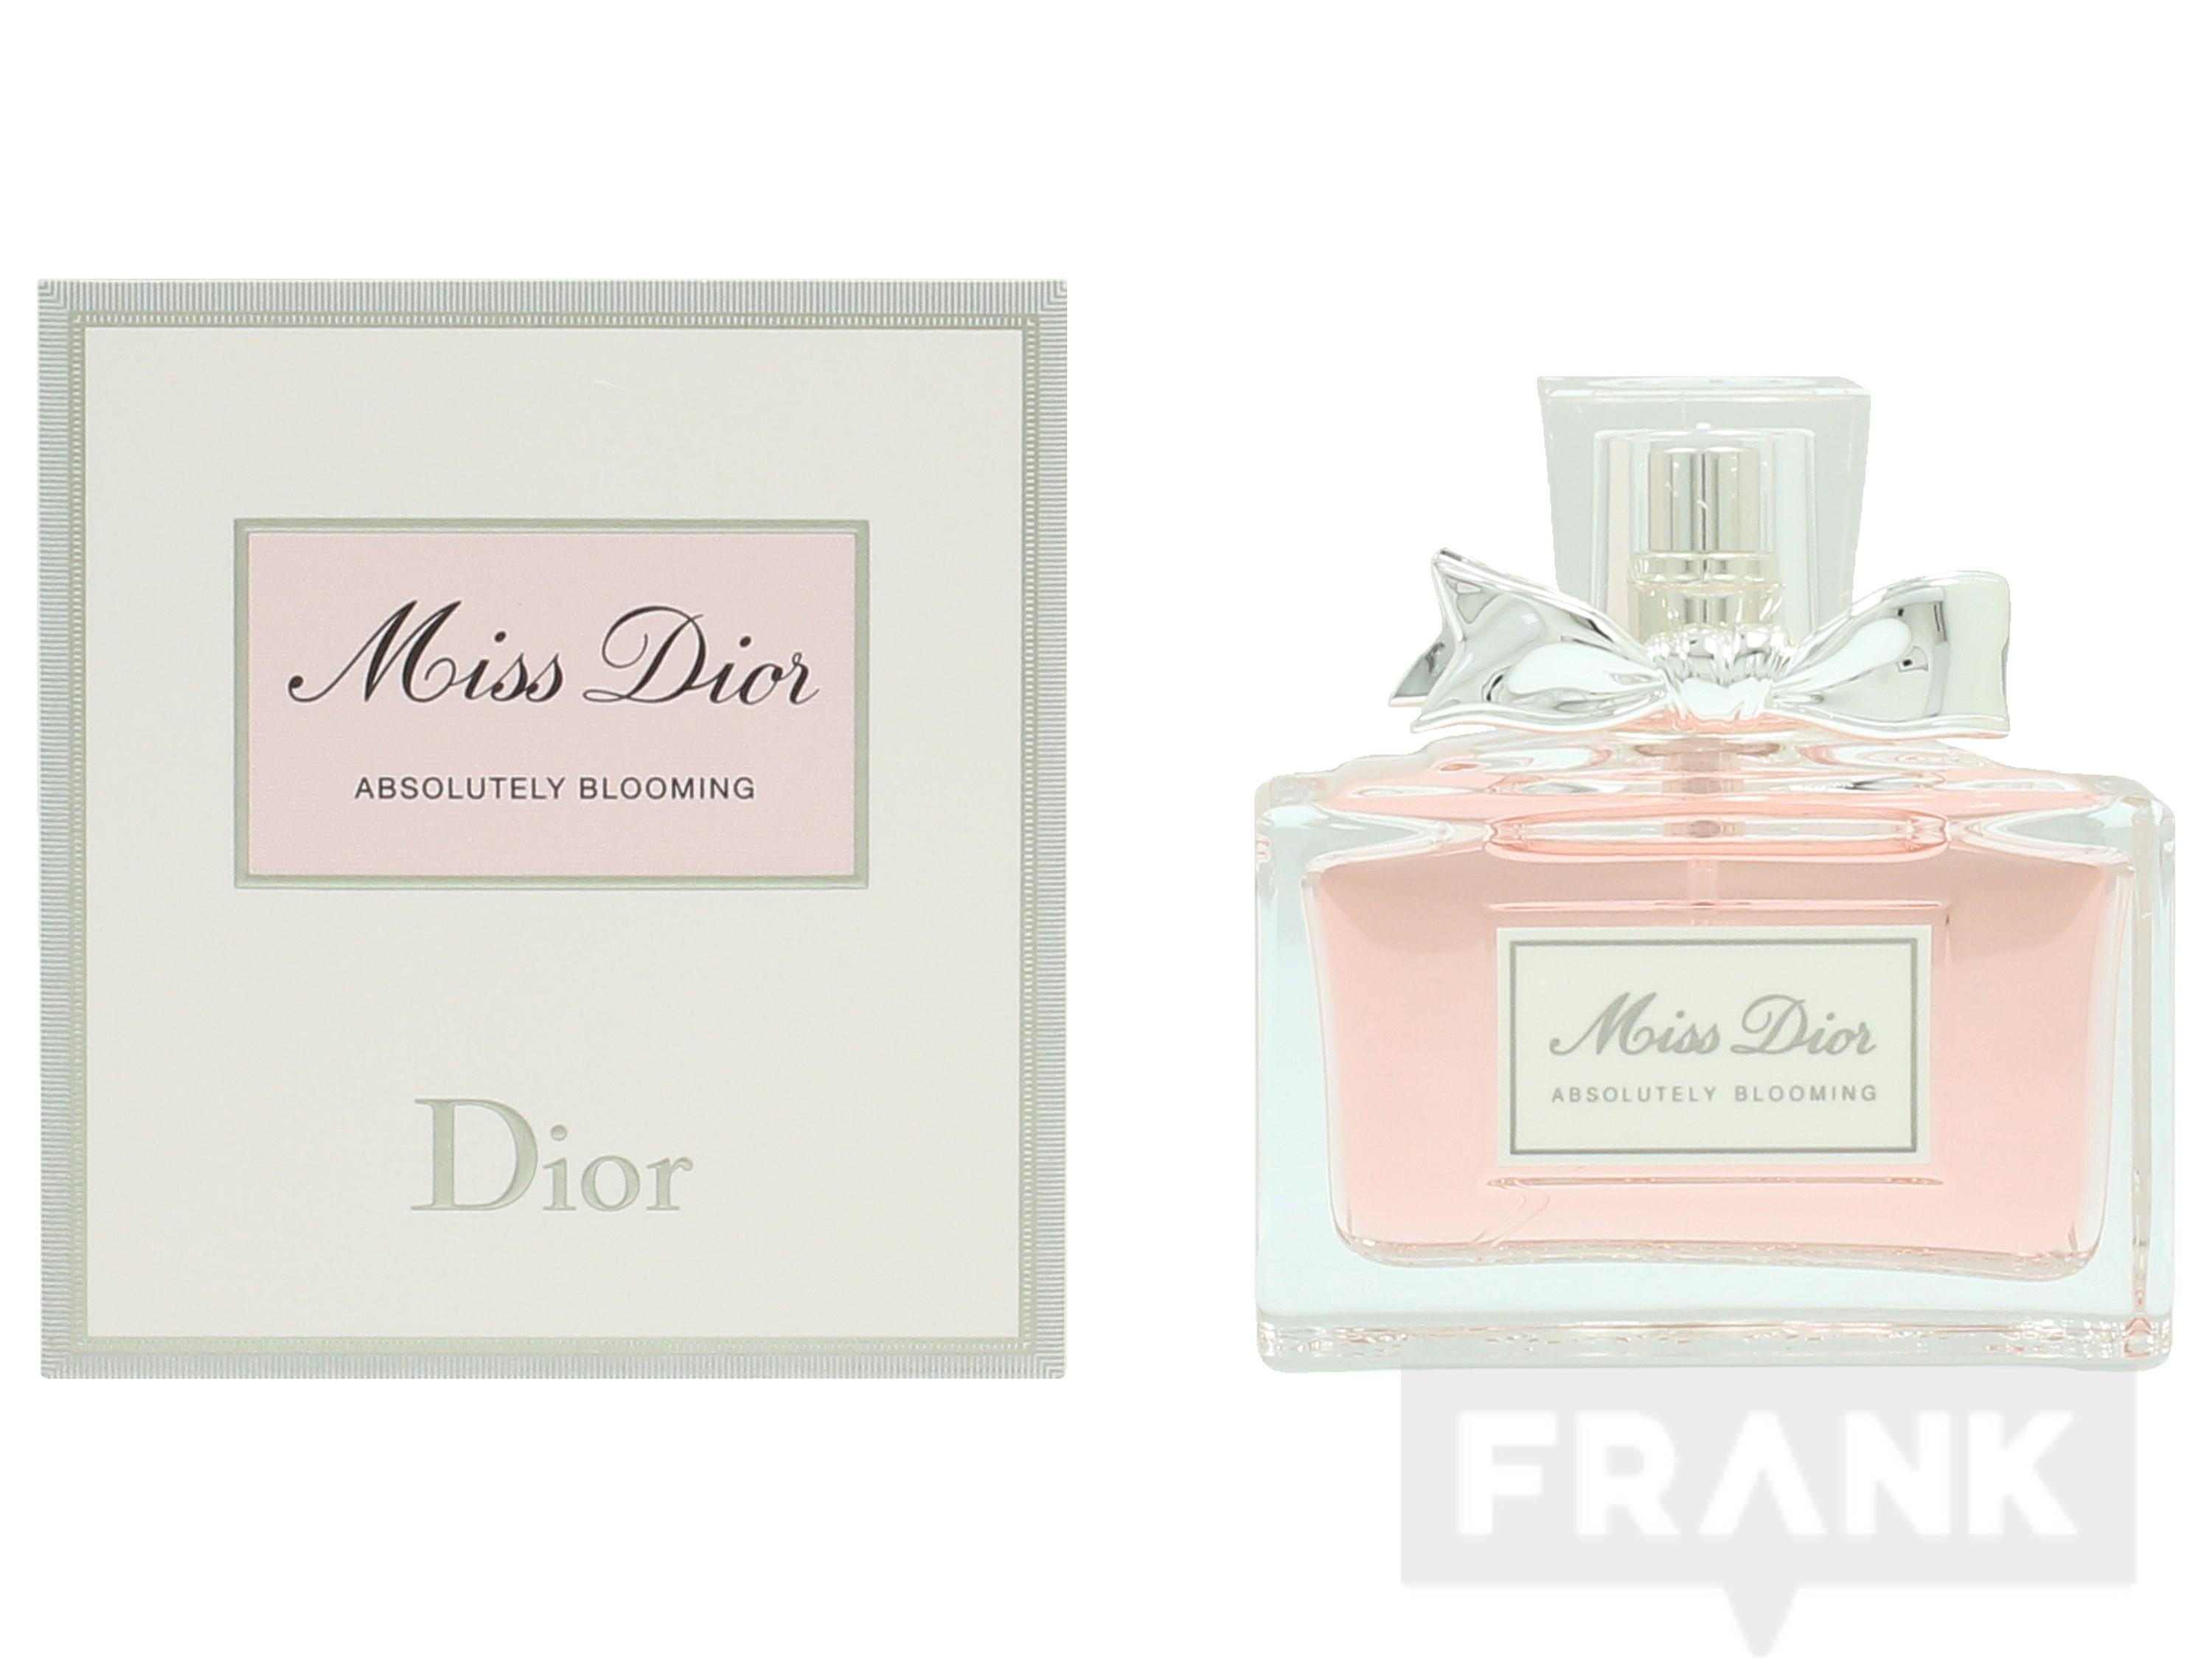 Dior Miss Dior Absolut Blooming Edp Spray